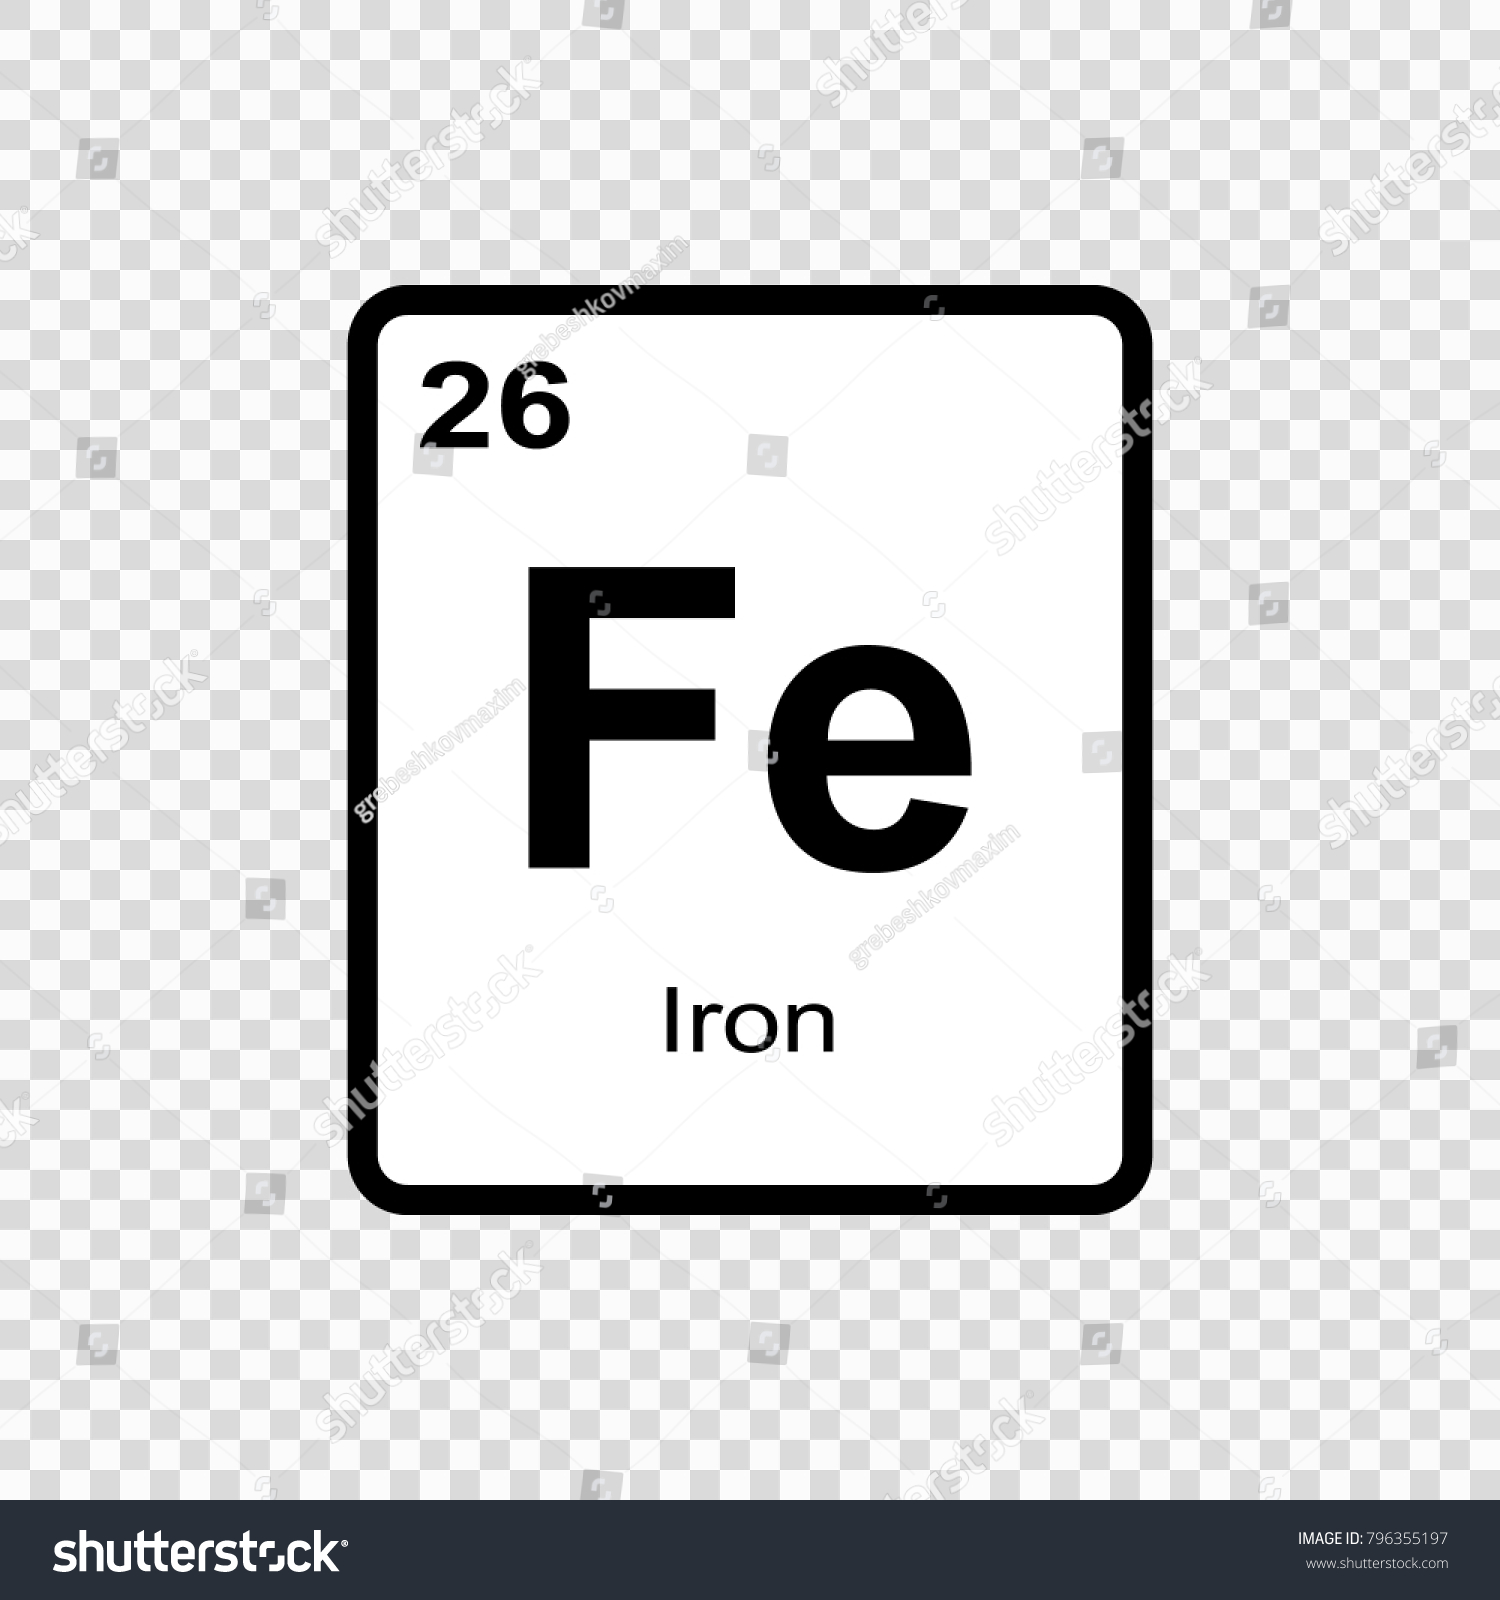 Iron chemical element sign atomic number stock vector royalty free iron chemical element sign with atomic number chemical element of periodic table urtaz